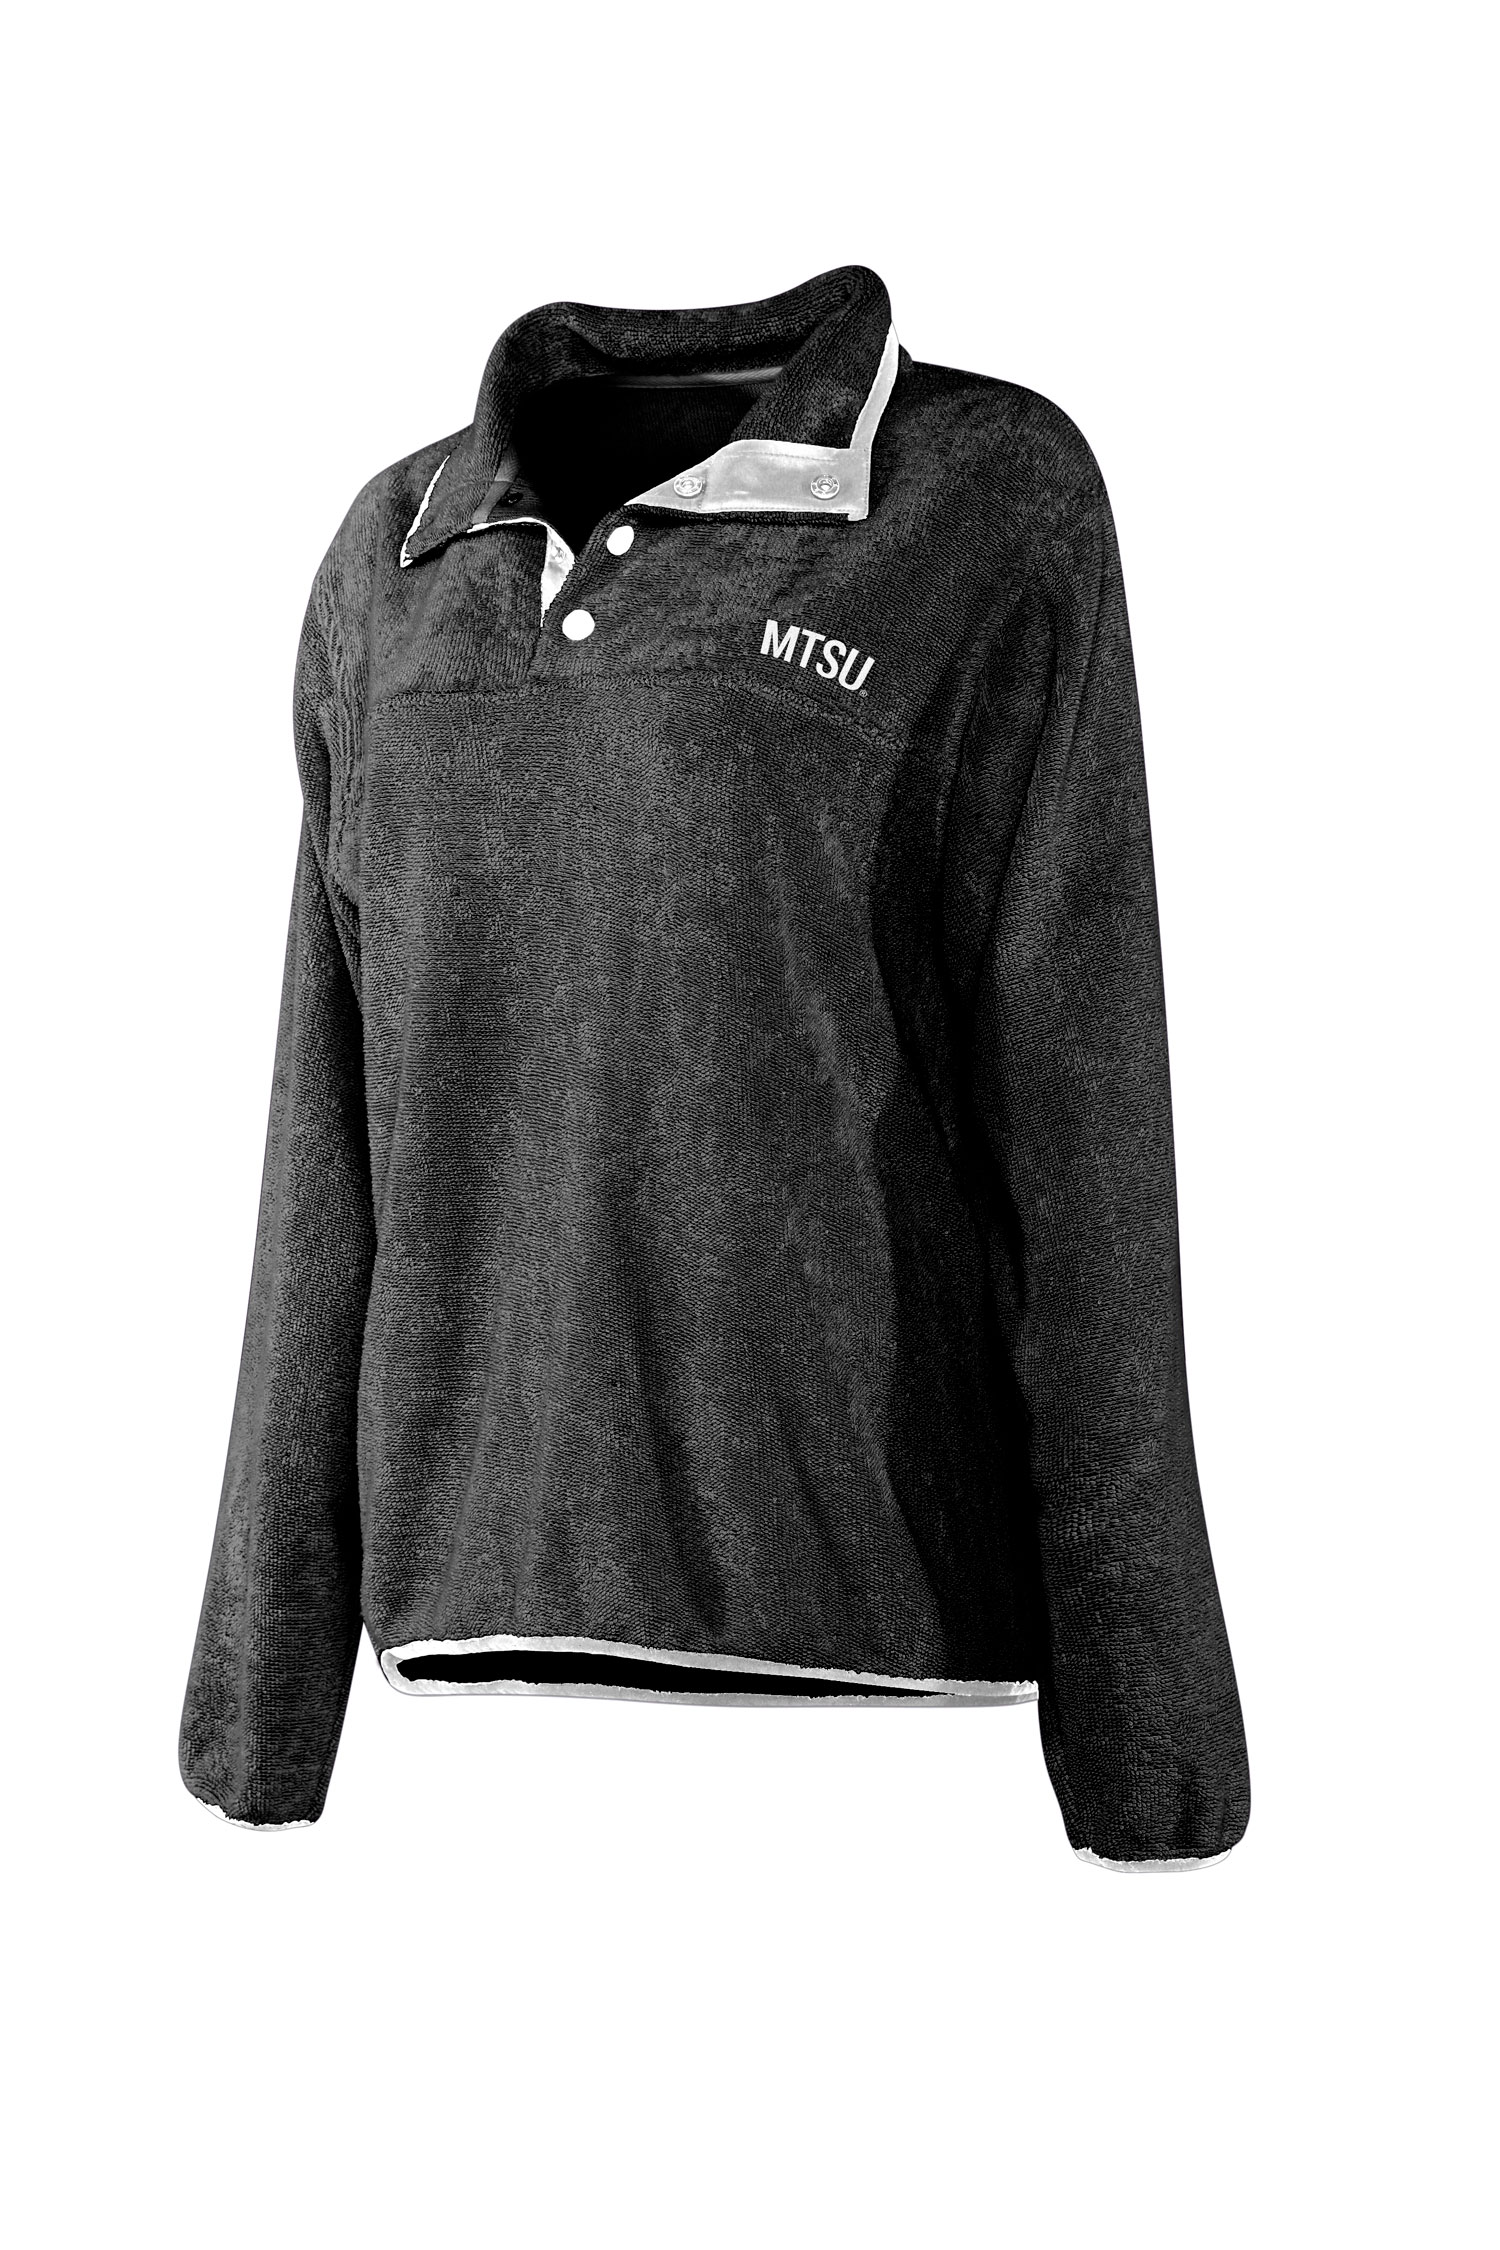 MTSU Looped Terry Snap Pullover